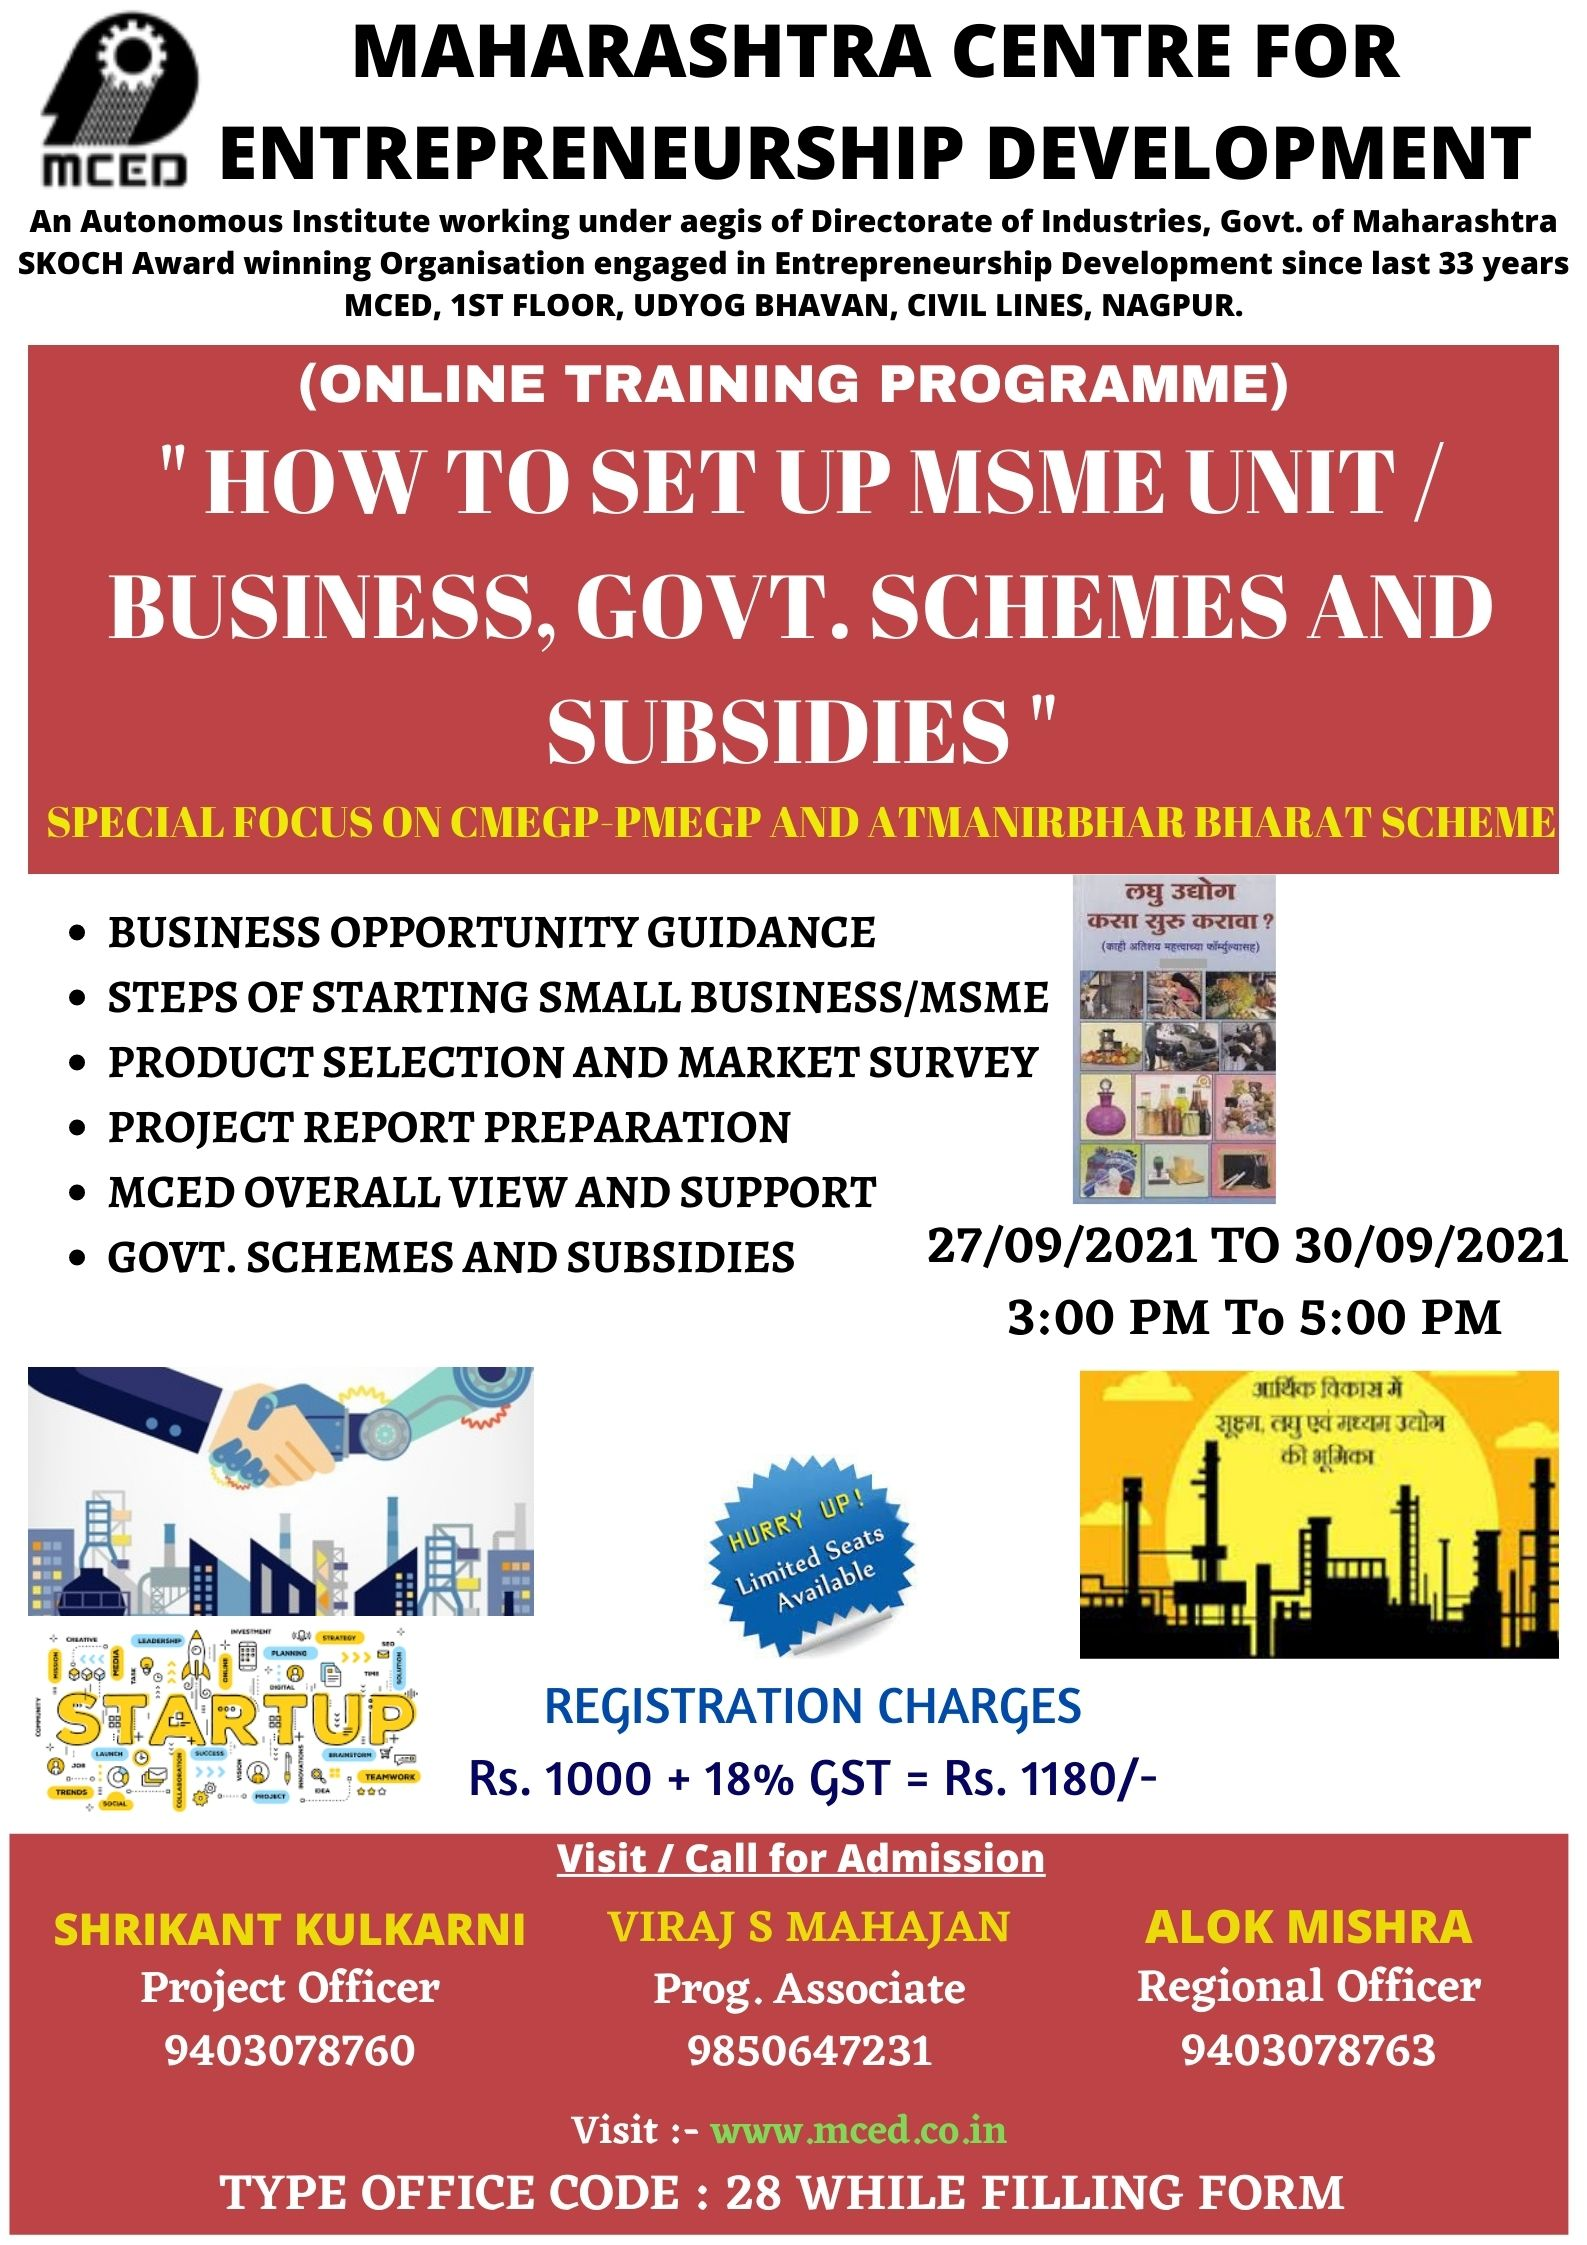 HOW TO SET UP MSME UNIT/BUSINESS, GOVT. SCHEMES AND SUBSIDIES